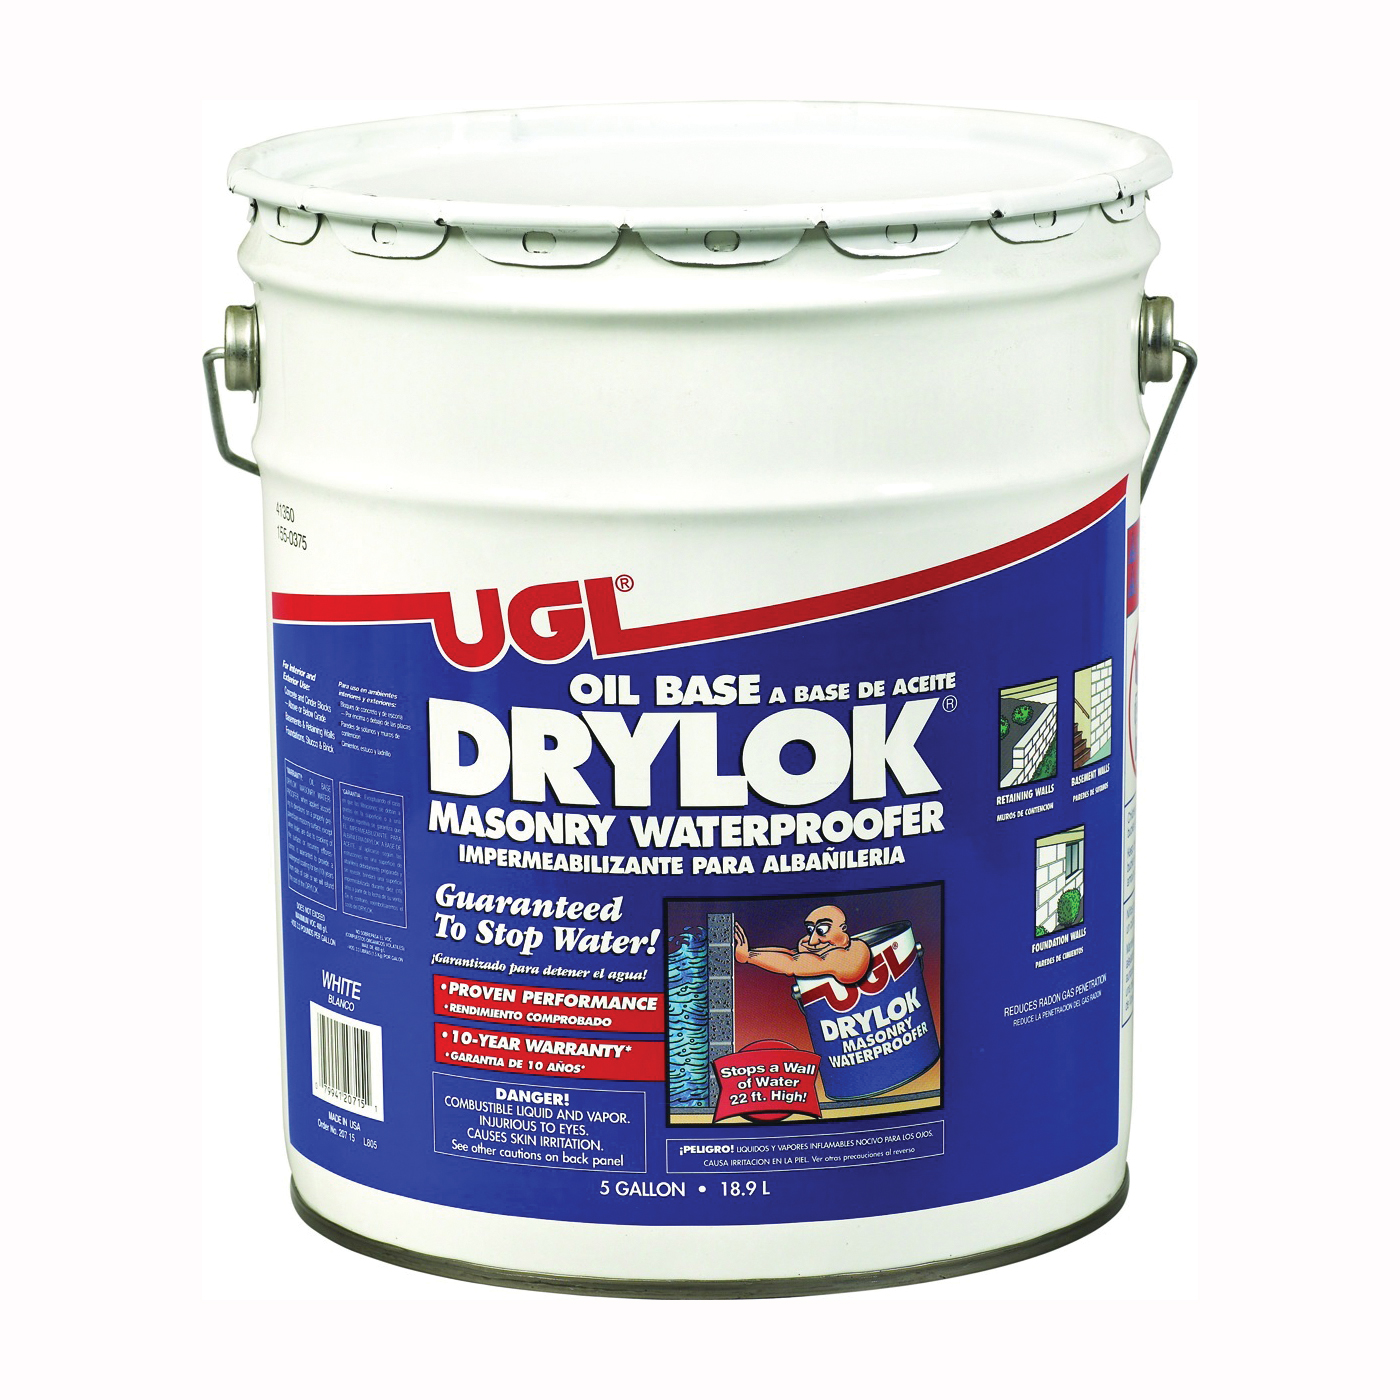 Picture of UGL DRYLOK 20715 Masonry Waterproofer, White, Liquid, 5 gal Package, Pail